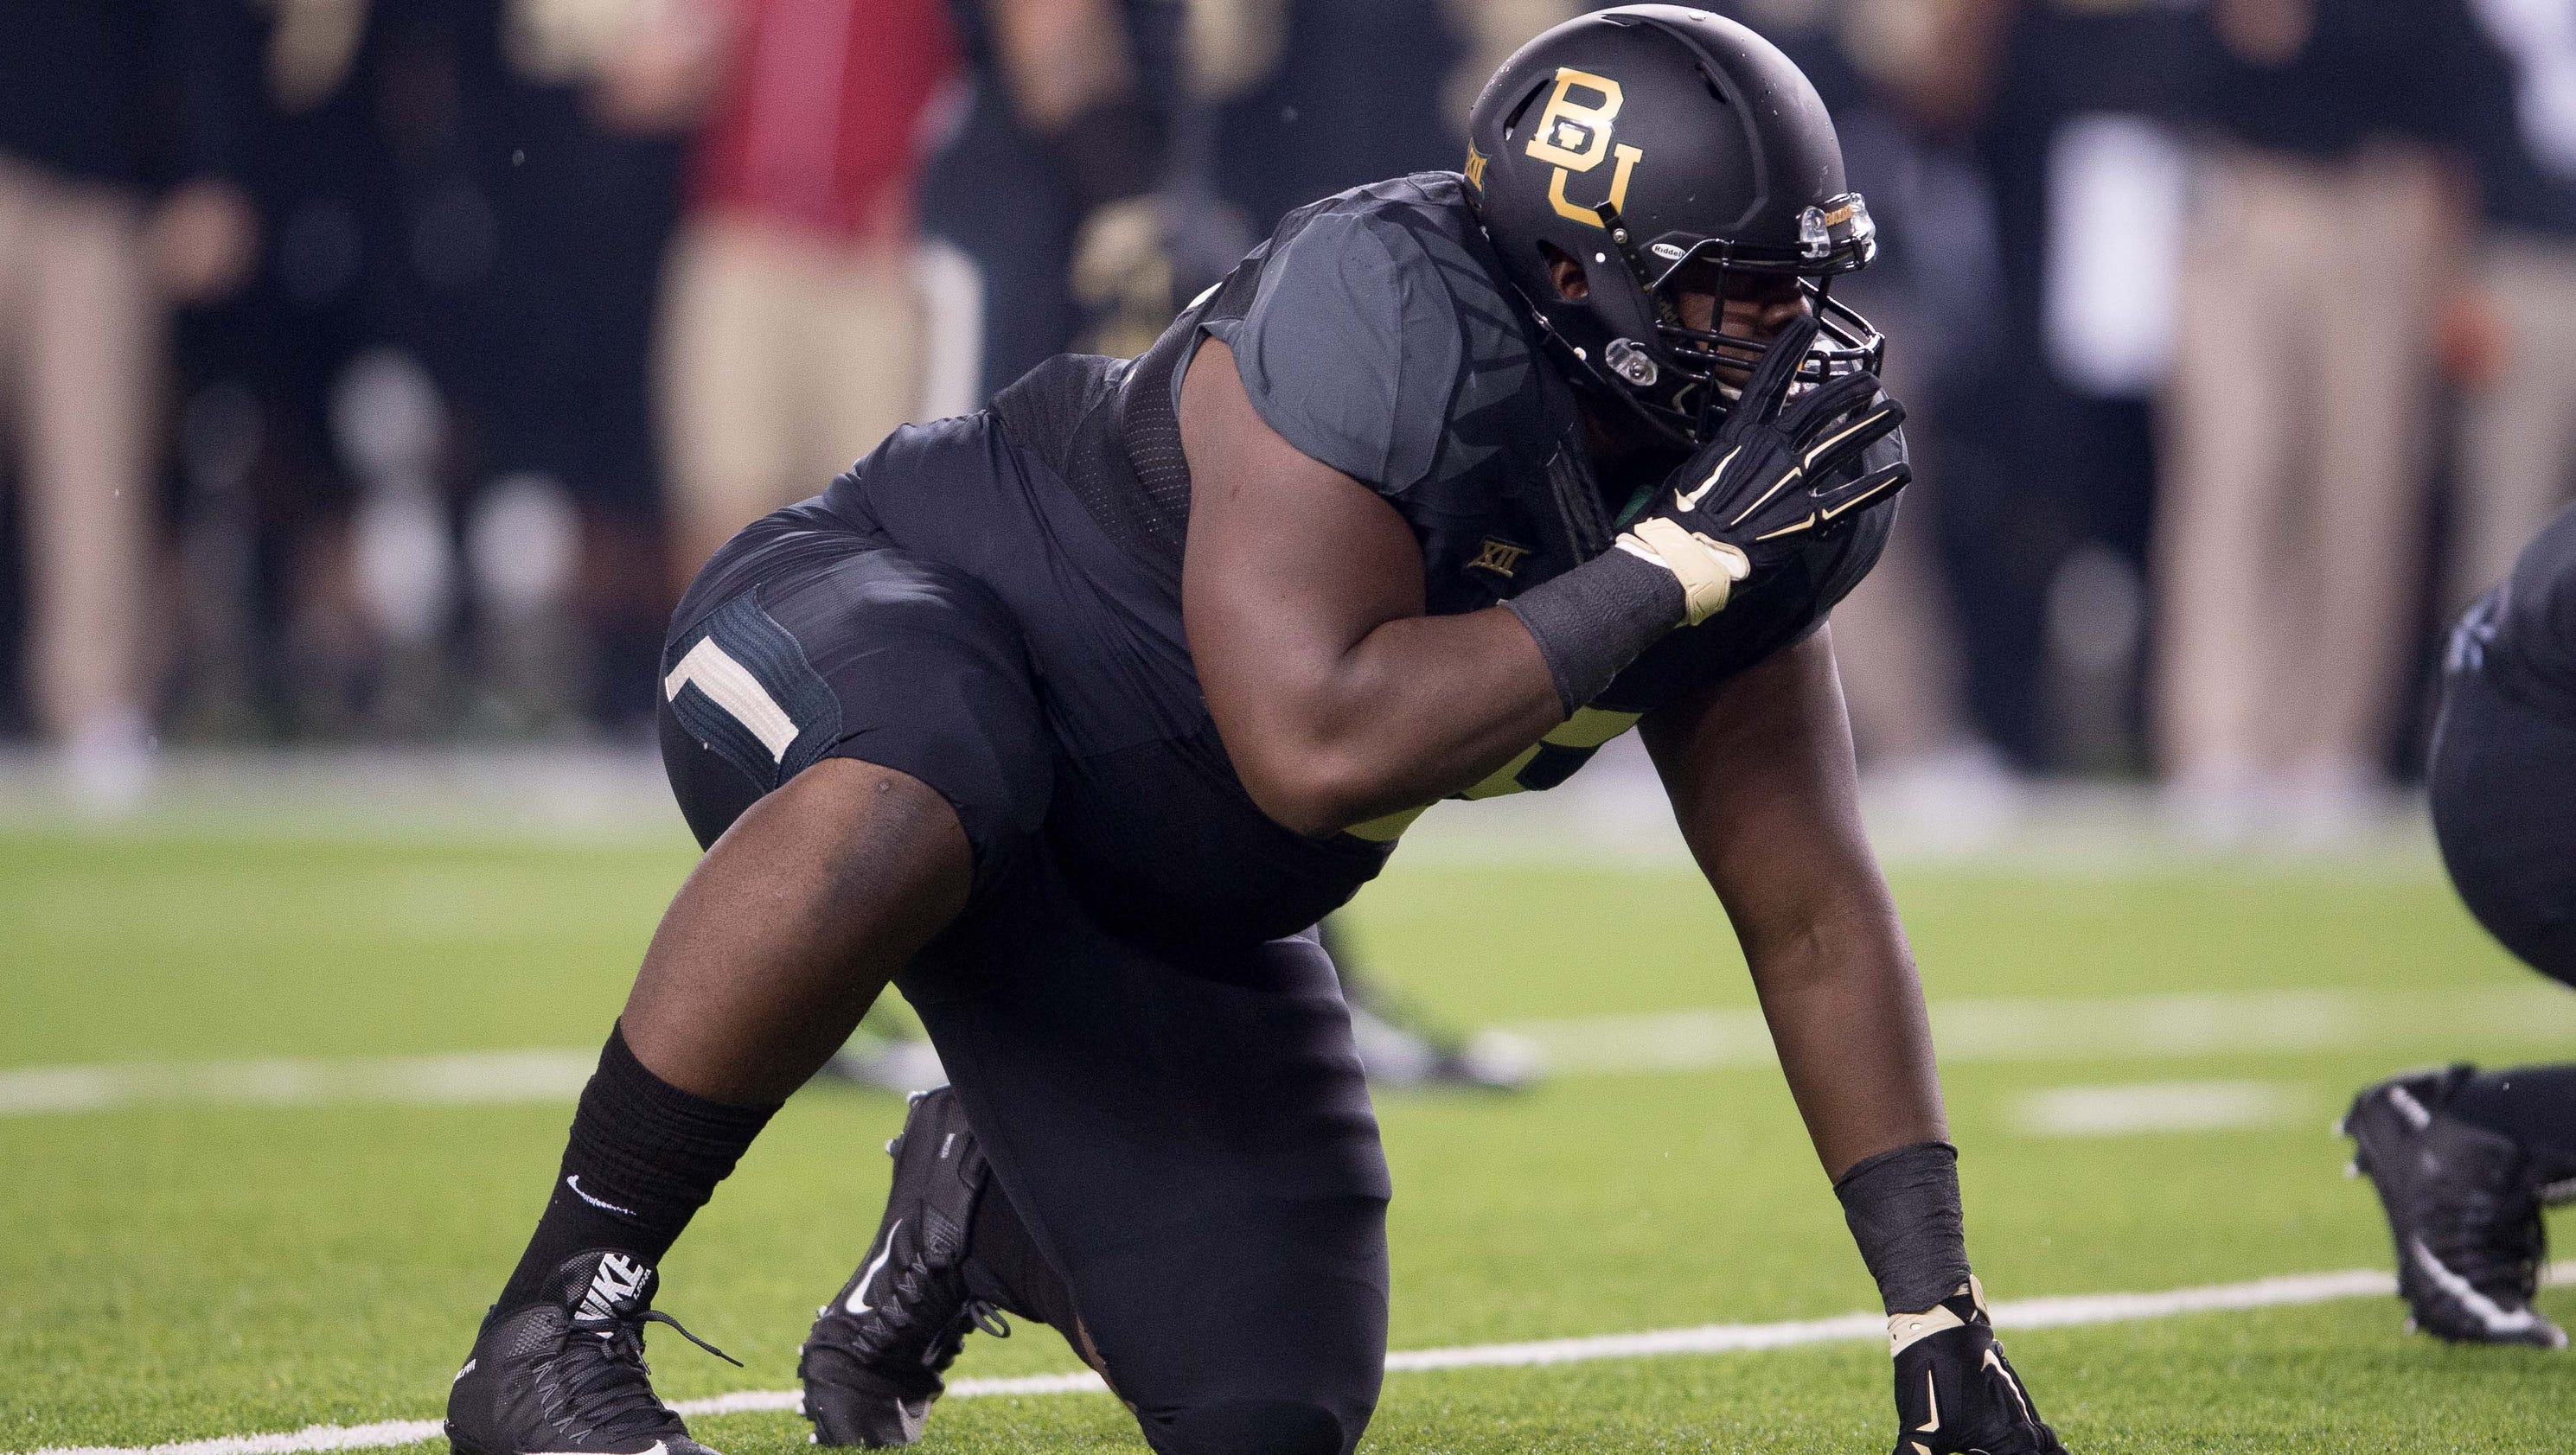 Bengals 4th round Andrew Billings DT Baylor